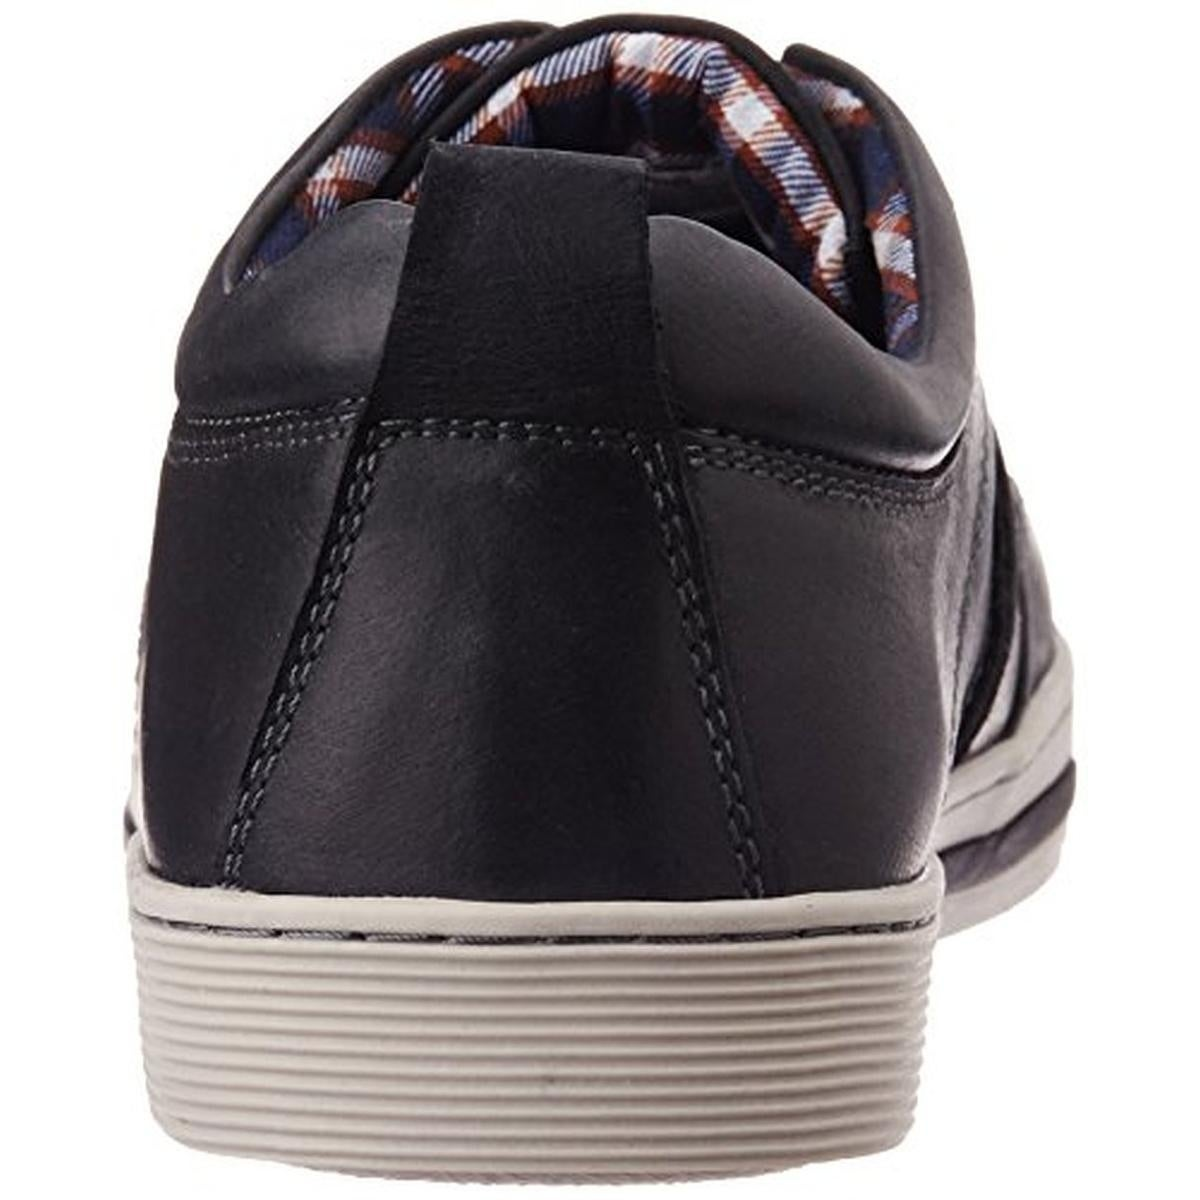 77e326d1ccc Shop Steve Madden Mens Pipeur Fashion Sneakers Classic Trainer - Free  Shipping On Orders Over  45 - Overstock - 22670942